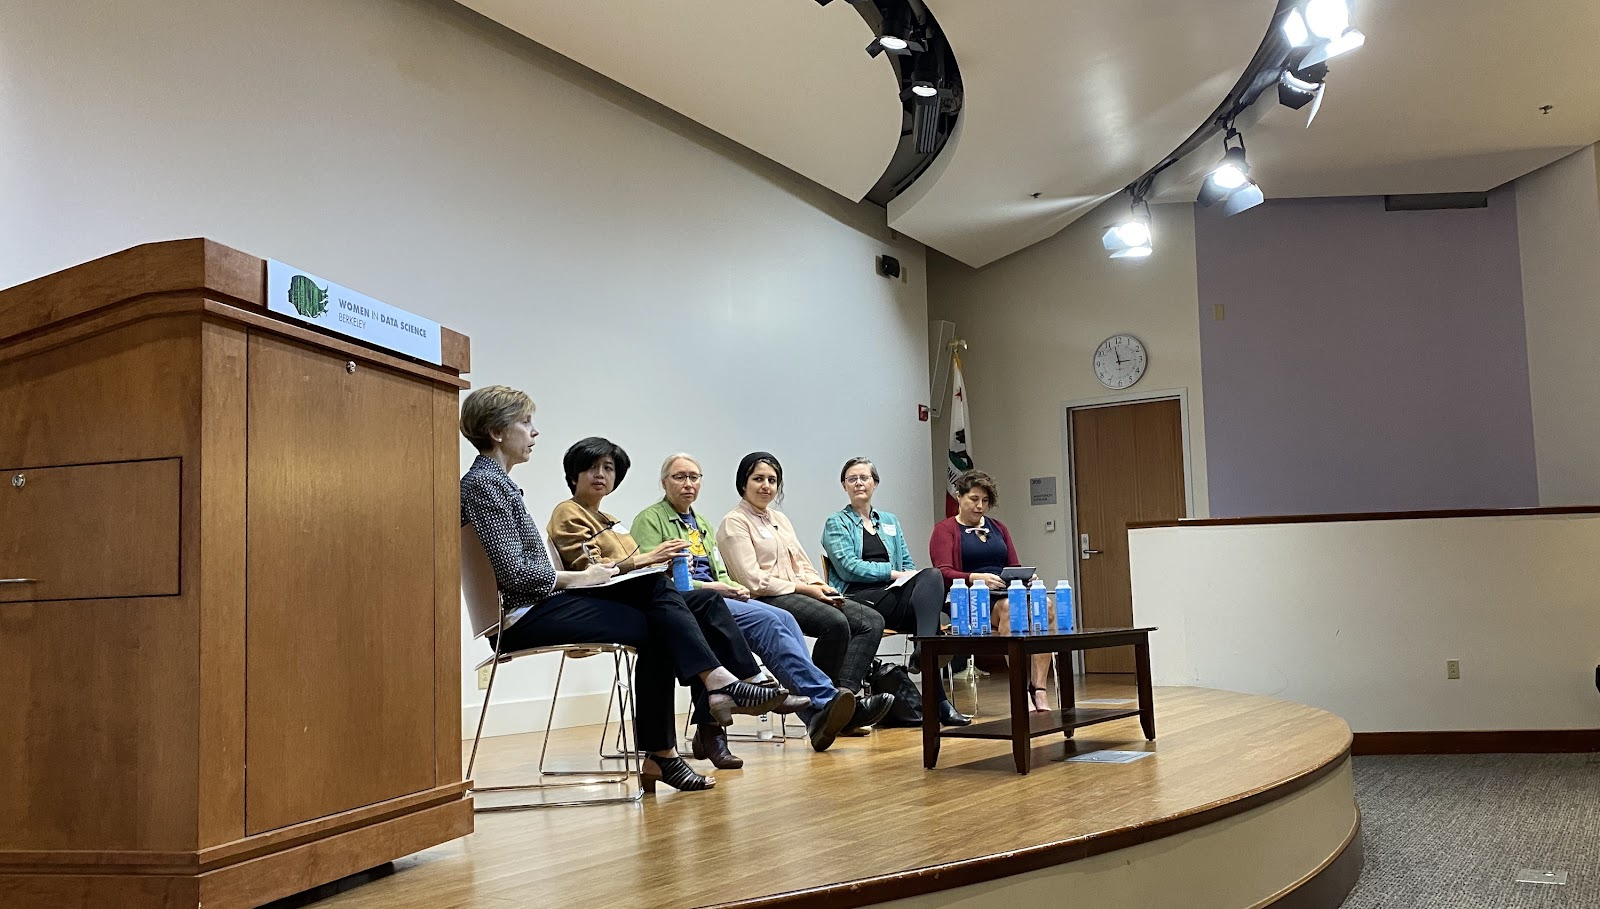 Panelists for the Building Inclusive Data Communities Panel at the 2020 WiDS Berkeley Conference are seated on a stage discussing a topic. Panelists pictured from left to right: Dr. Camille Crittenden (Moderator), Ling Cheng, Annette M. Grenier, Prof. Niloufar Salehi, Prof. Cathryn Carson, Dr. Claudia von Vacano